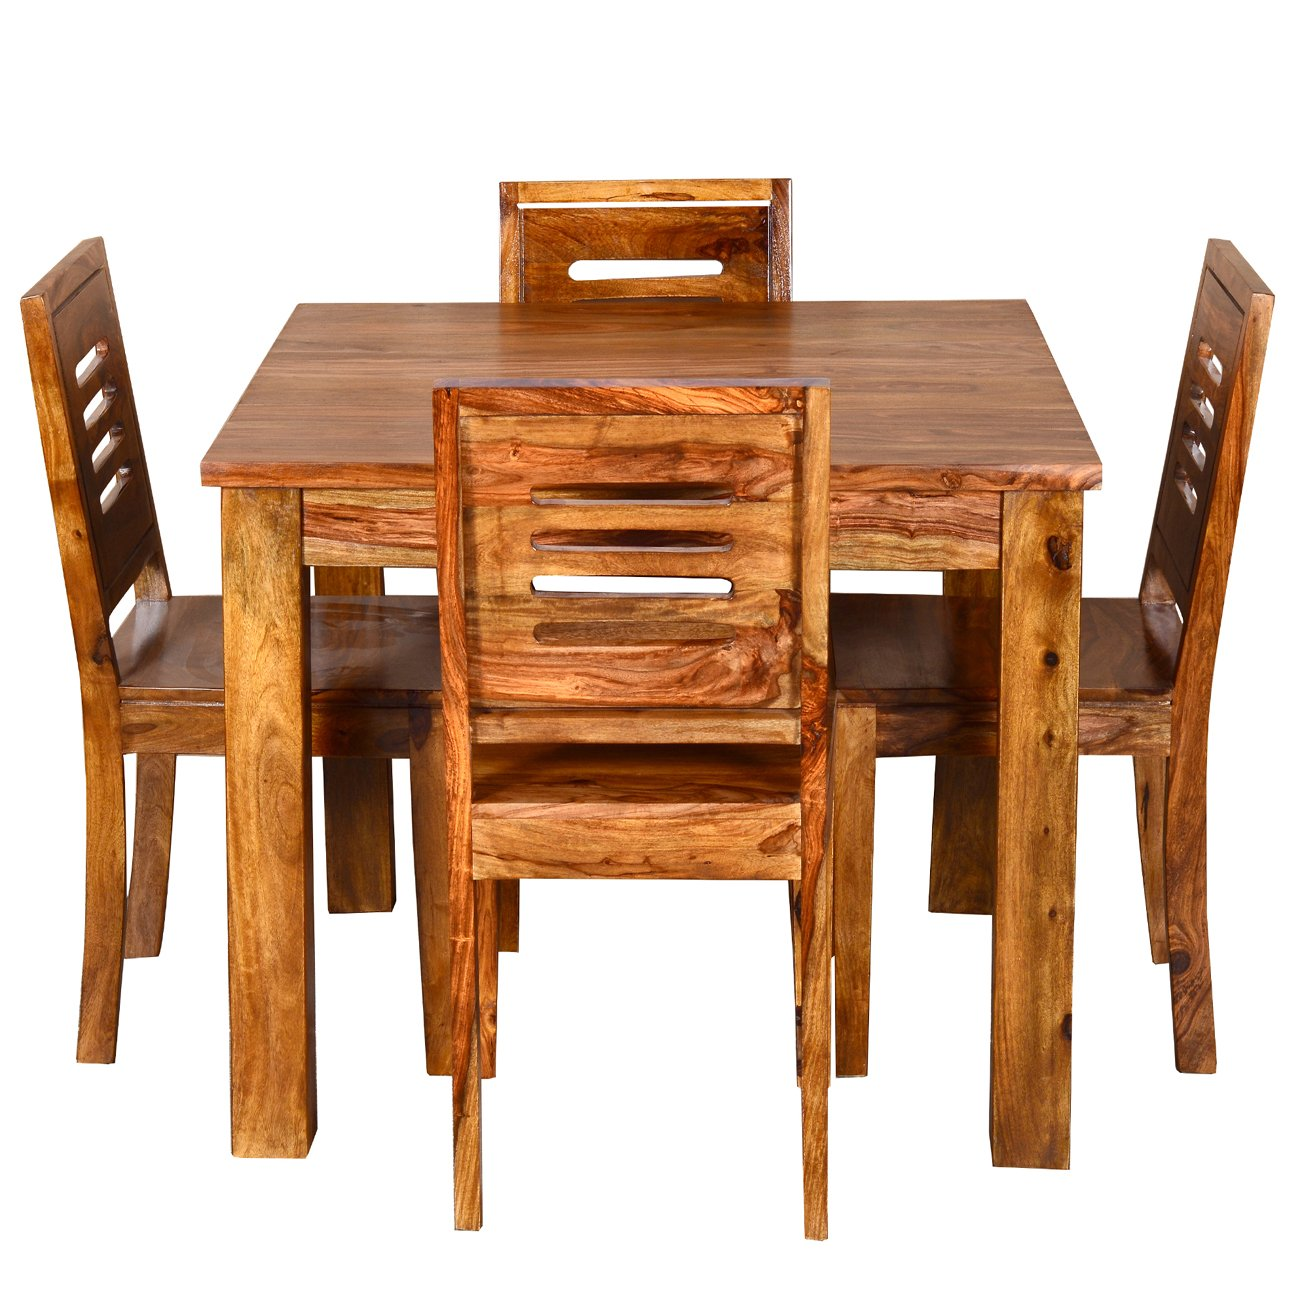 Ringabell Square Four Seater Solid Wood Dining Table Brown Best Home And Kitchen Store